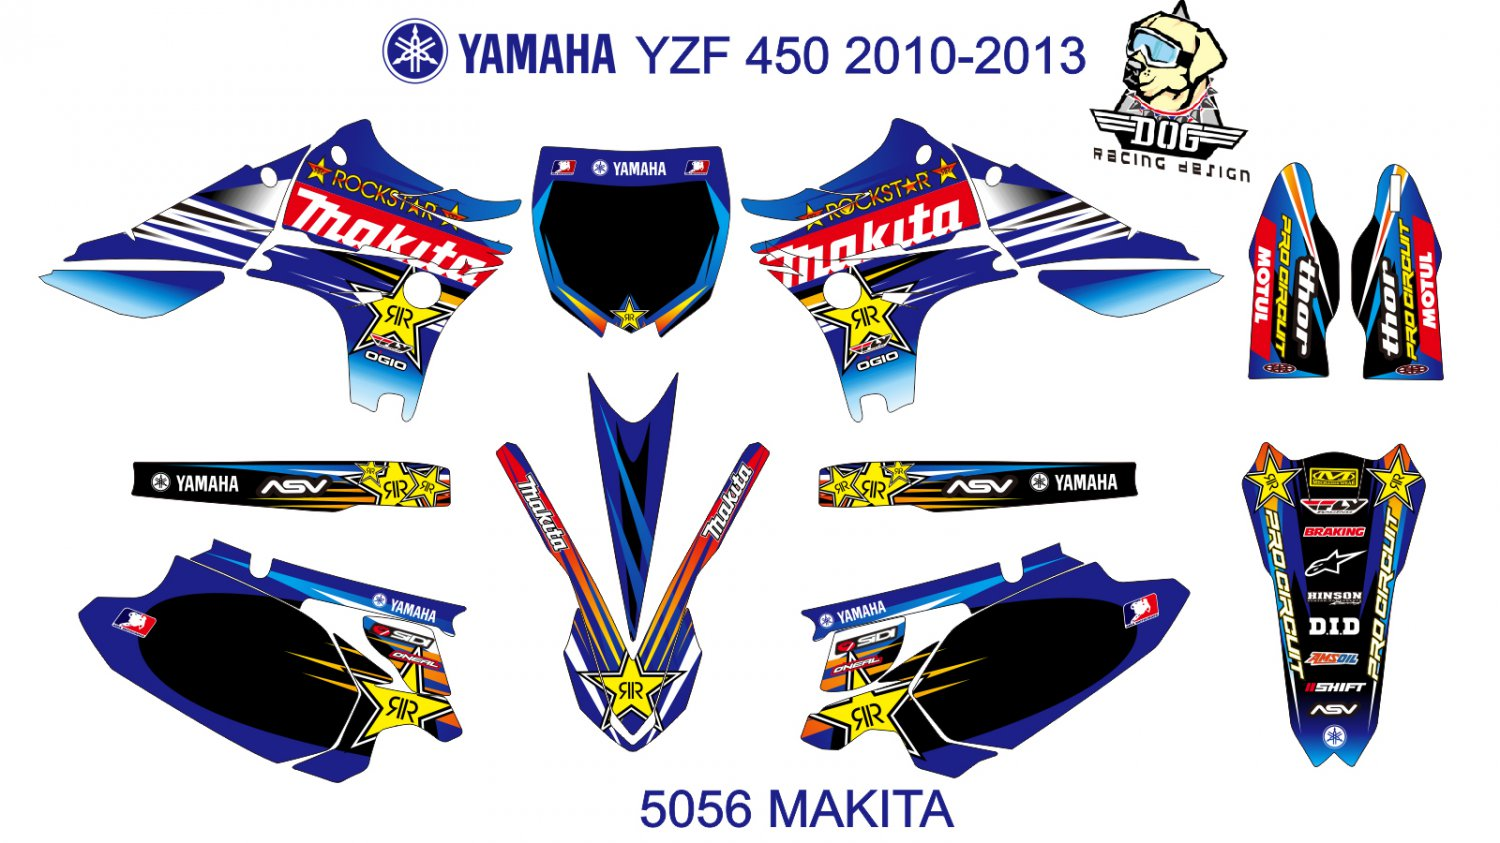 YAMAHA YZF 450 2010-2013 GRAPHIC DECAL KIT CODE.5056